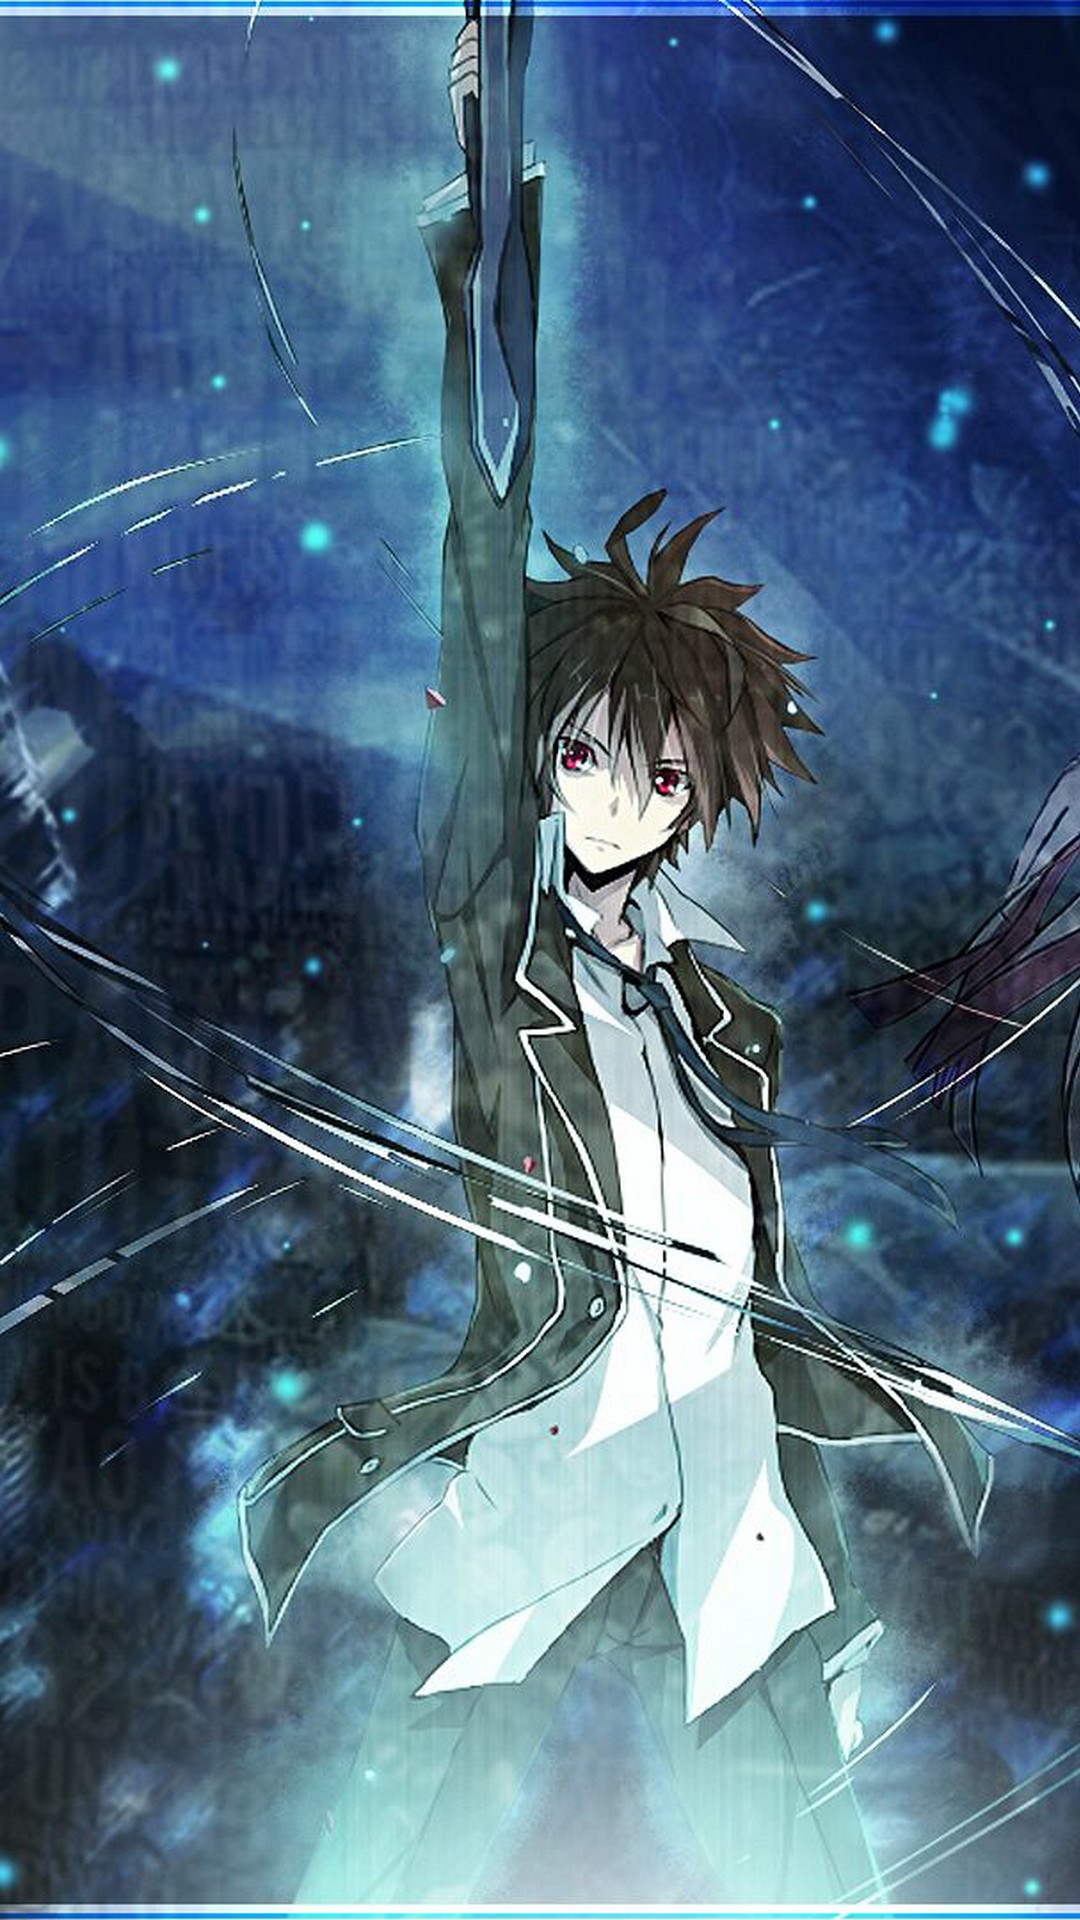 coole anime wallpaper iphone   Anime Wallpaper   21x21 ...